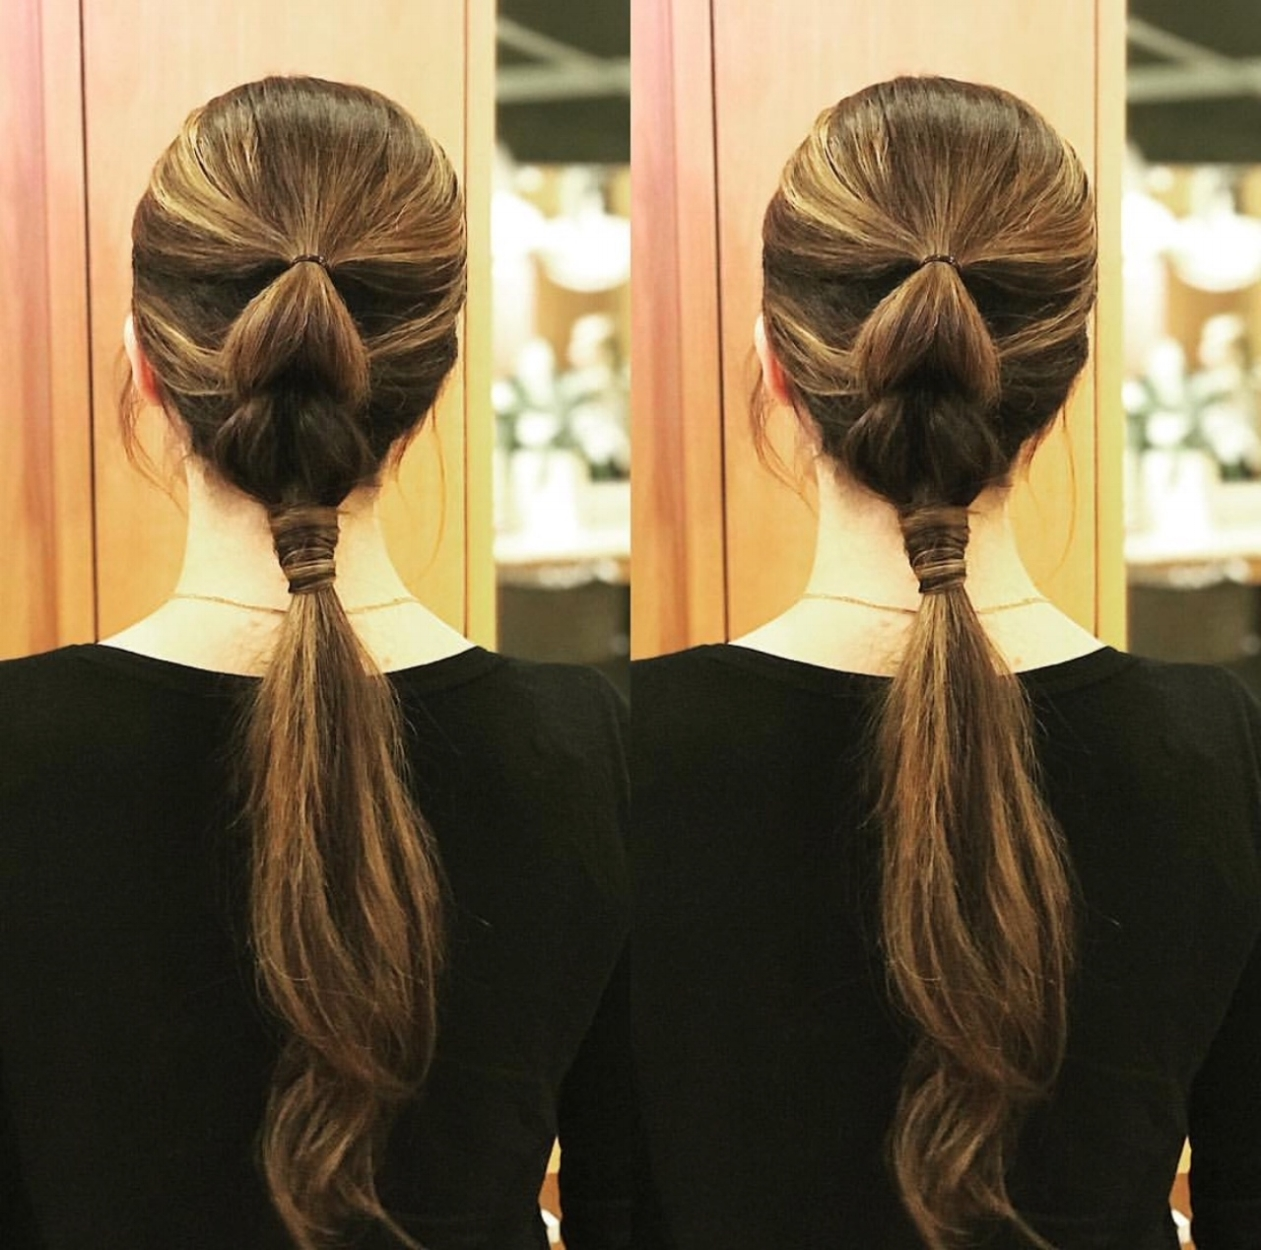 sleek updo.jpg